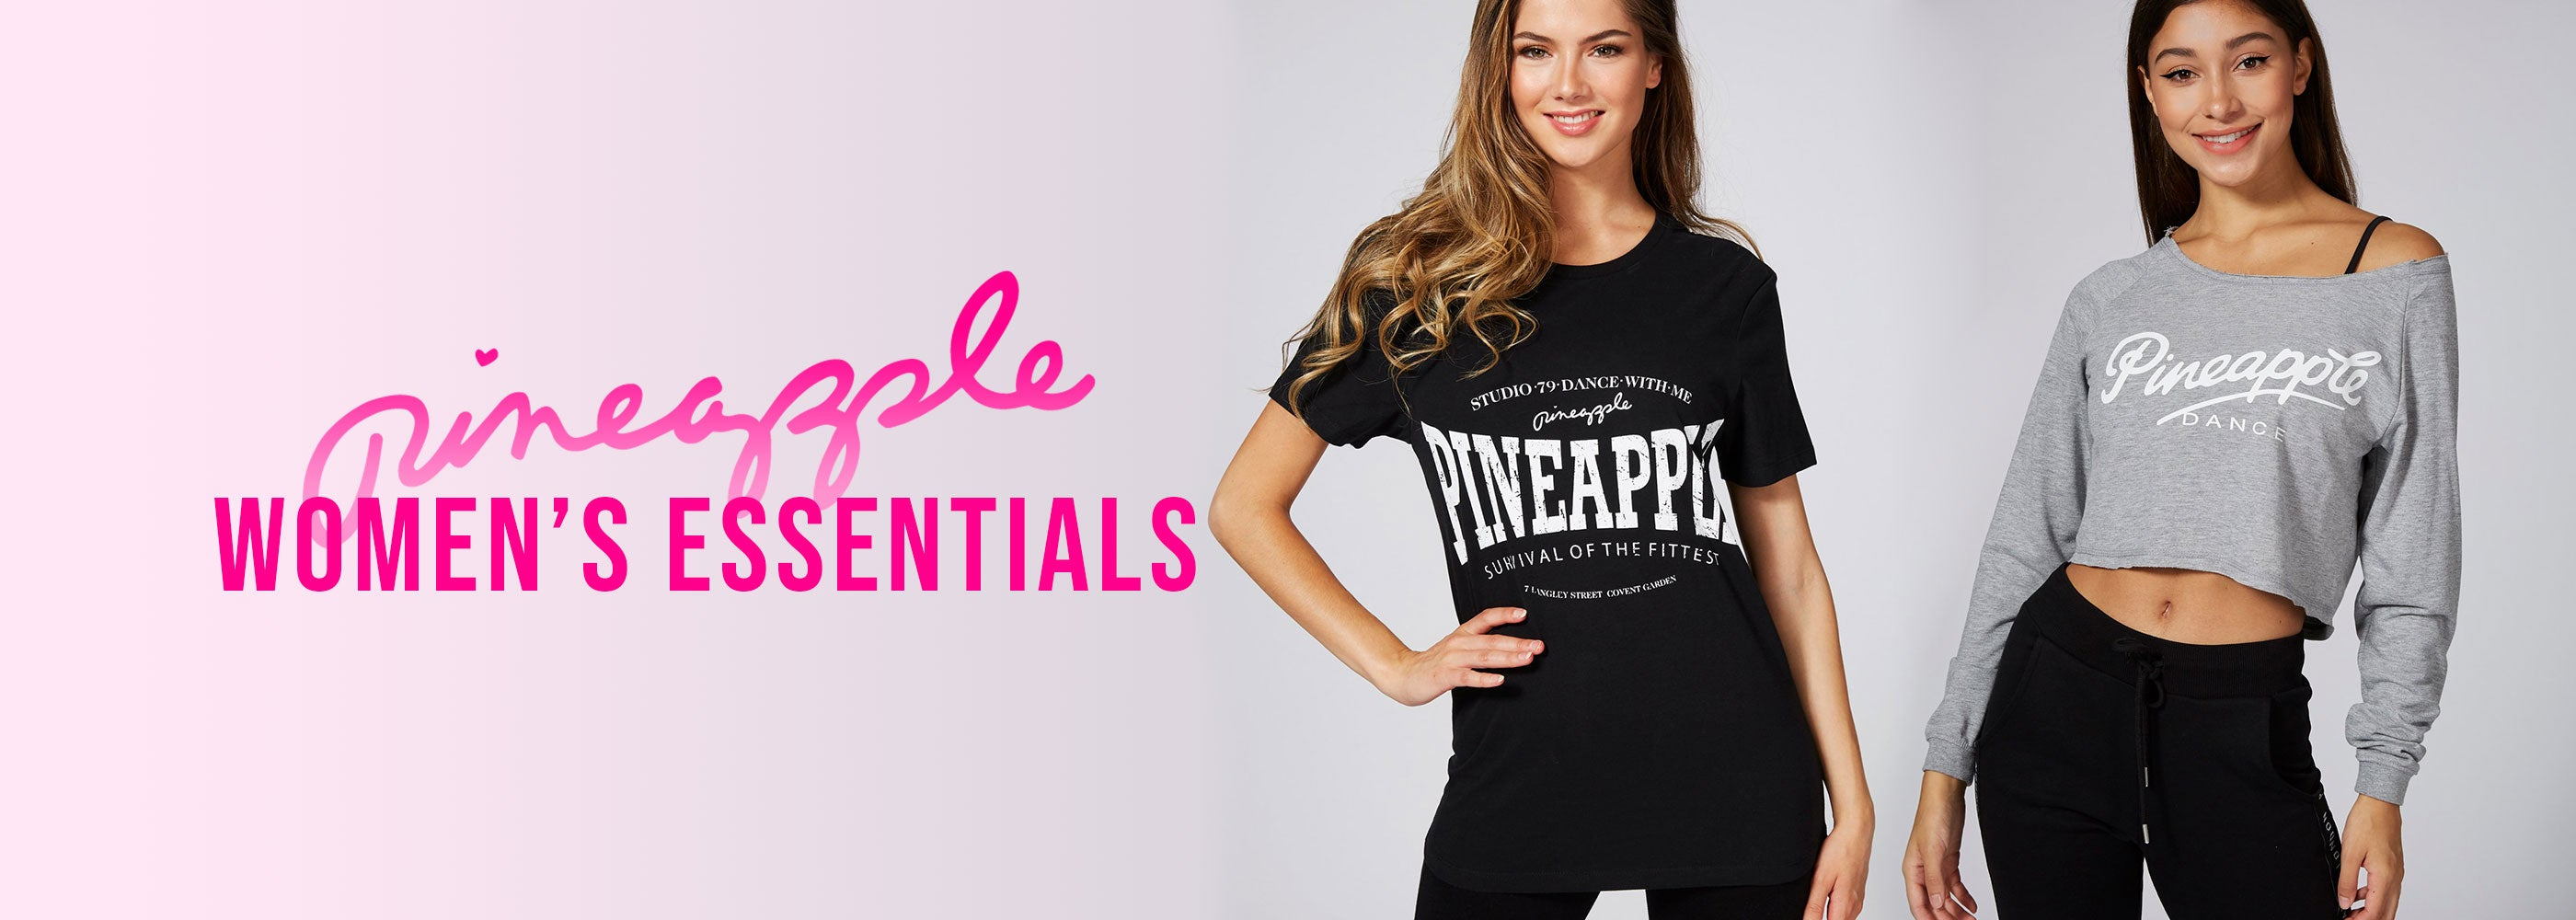 Pineapple Dance leisure and fitness fashion essentials for women